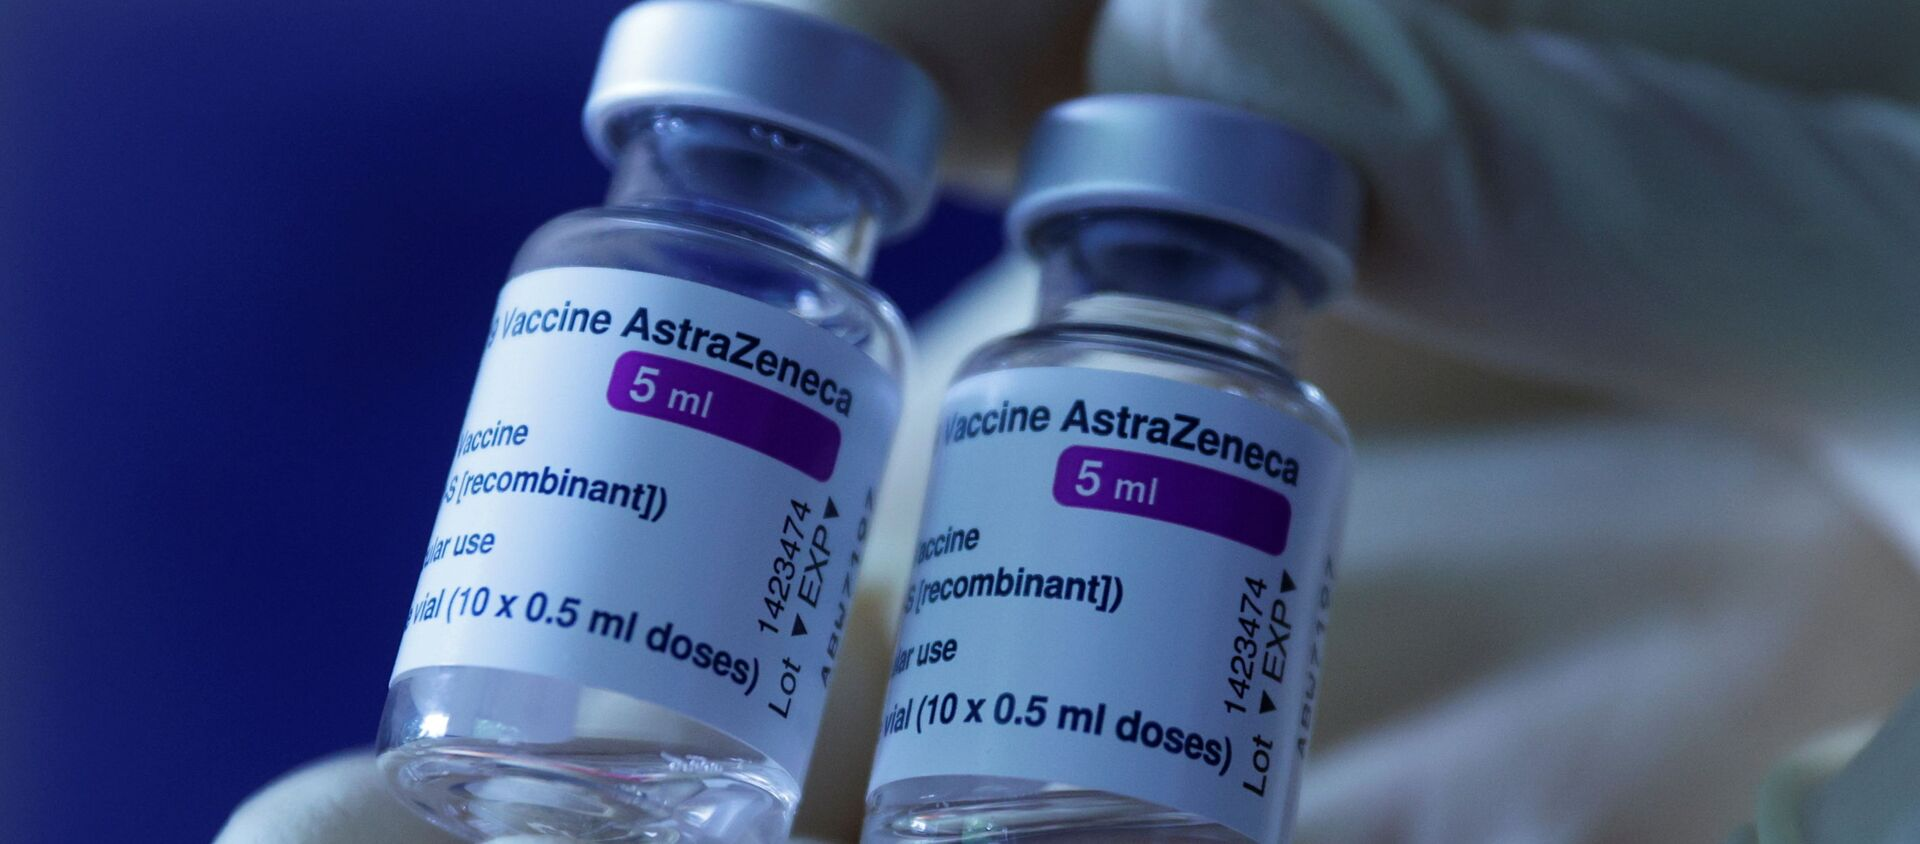 A doctor shows vials of AstraZeneca's COVID-19 vaccine in his general practice facility, as the spread of the coronavirus disease (COVID-19) continues, in Vienna, Austria May13, 2021.  REUTERS/Leonhard Foeger - Sputnik International, 1920, 04.08.2021